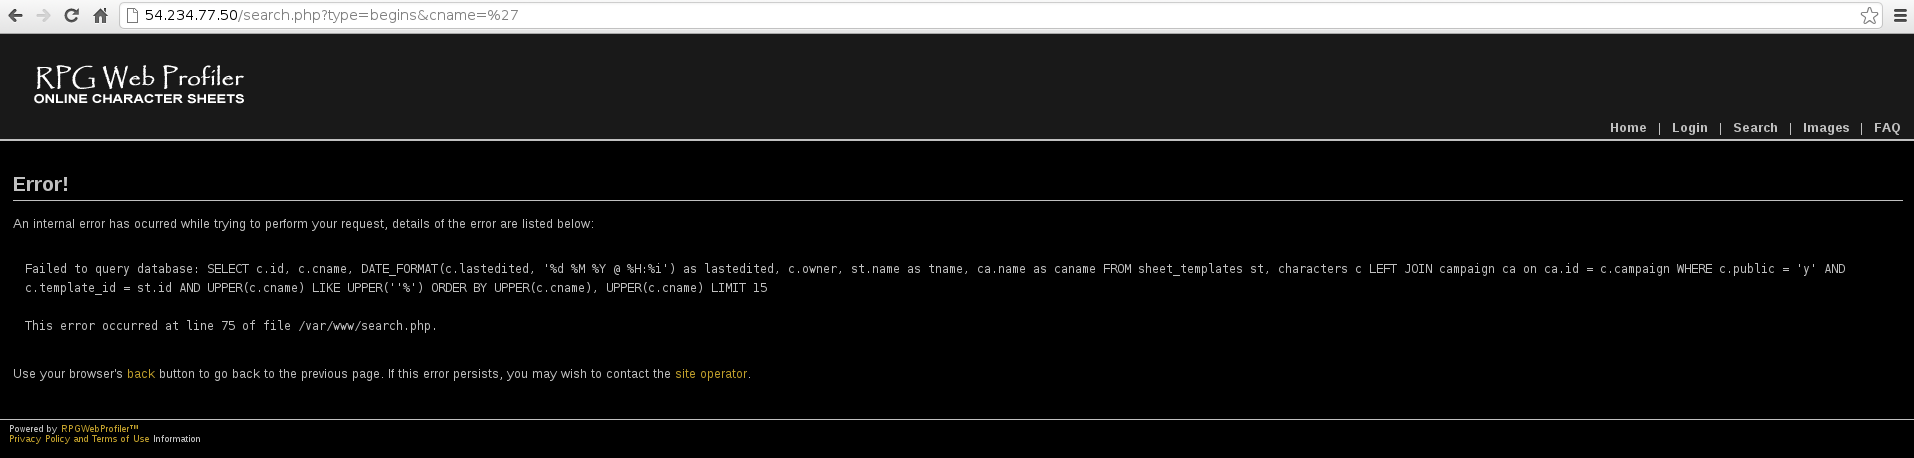 plaidCTF 2013 - charsheet - sql query error message